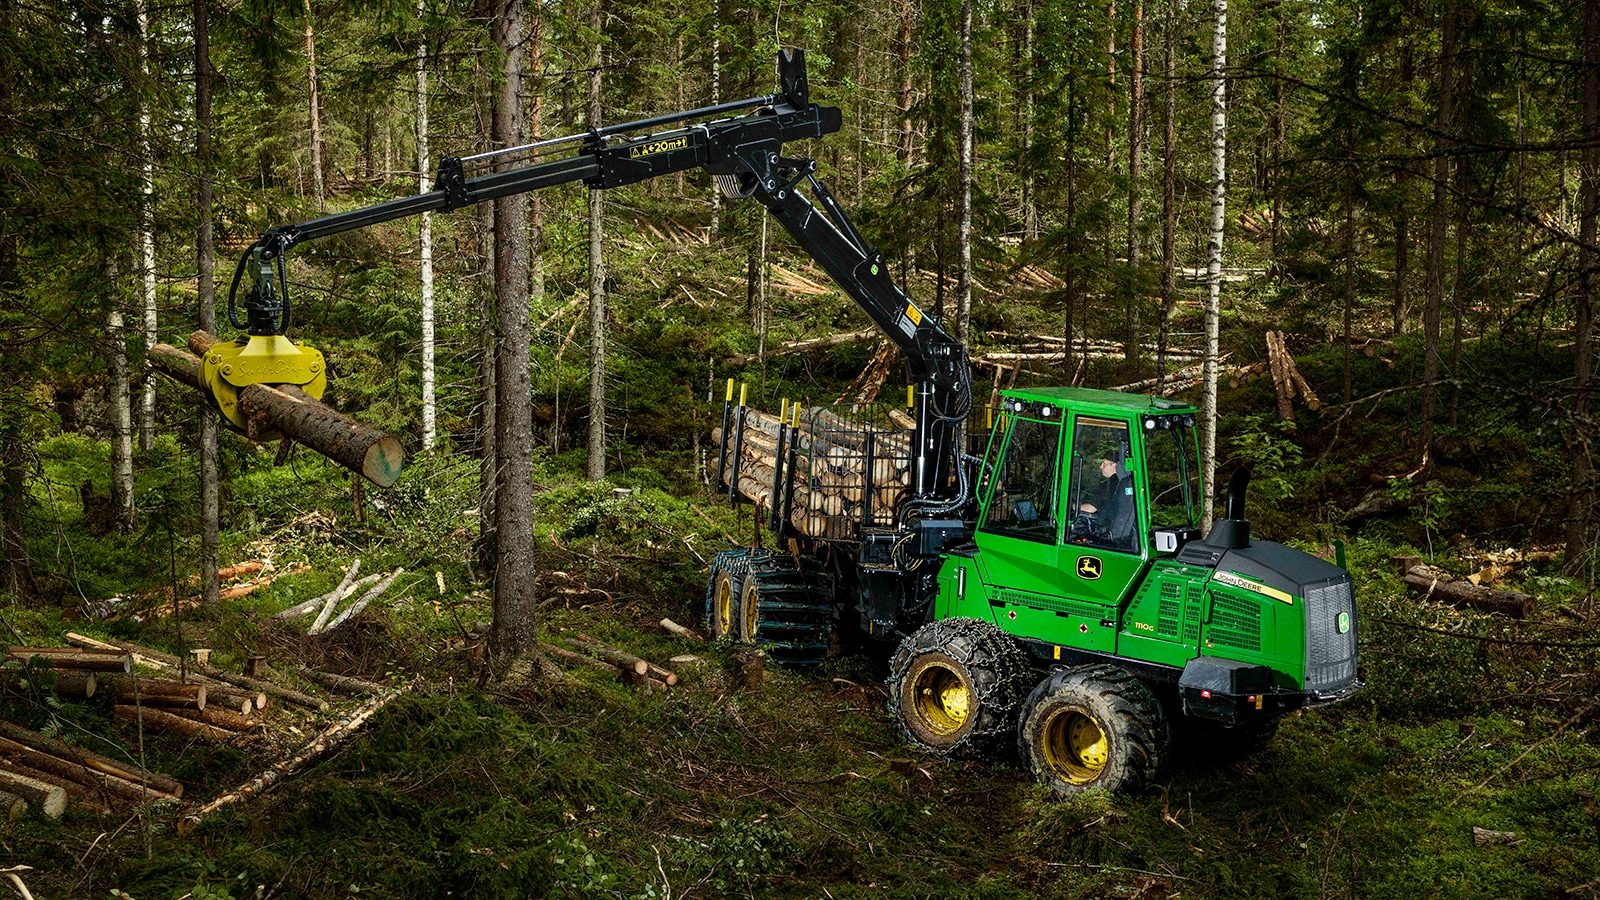 G-Series Forwarder working in the forest